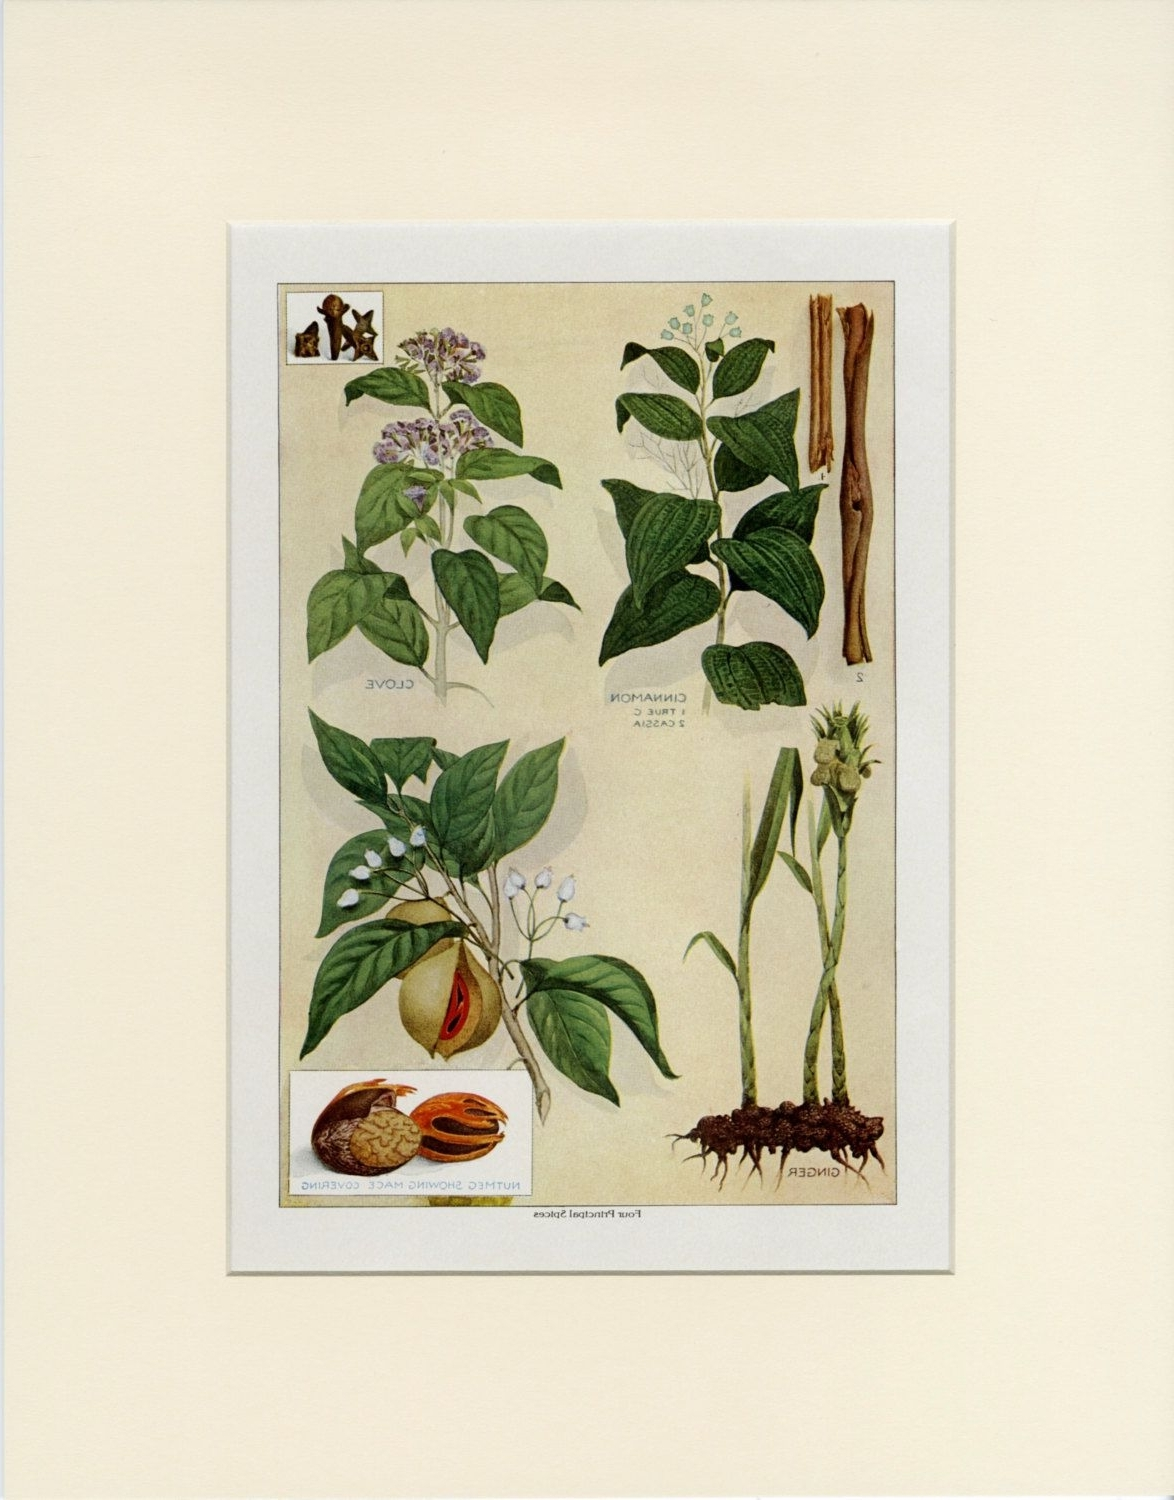 Famous Vintage Herb Wall Art, Four Principal Spices: Cinnamon Clove Ginger Throughout Herb Wall Art (View 3 of 20)